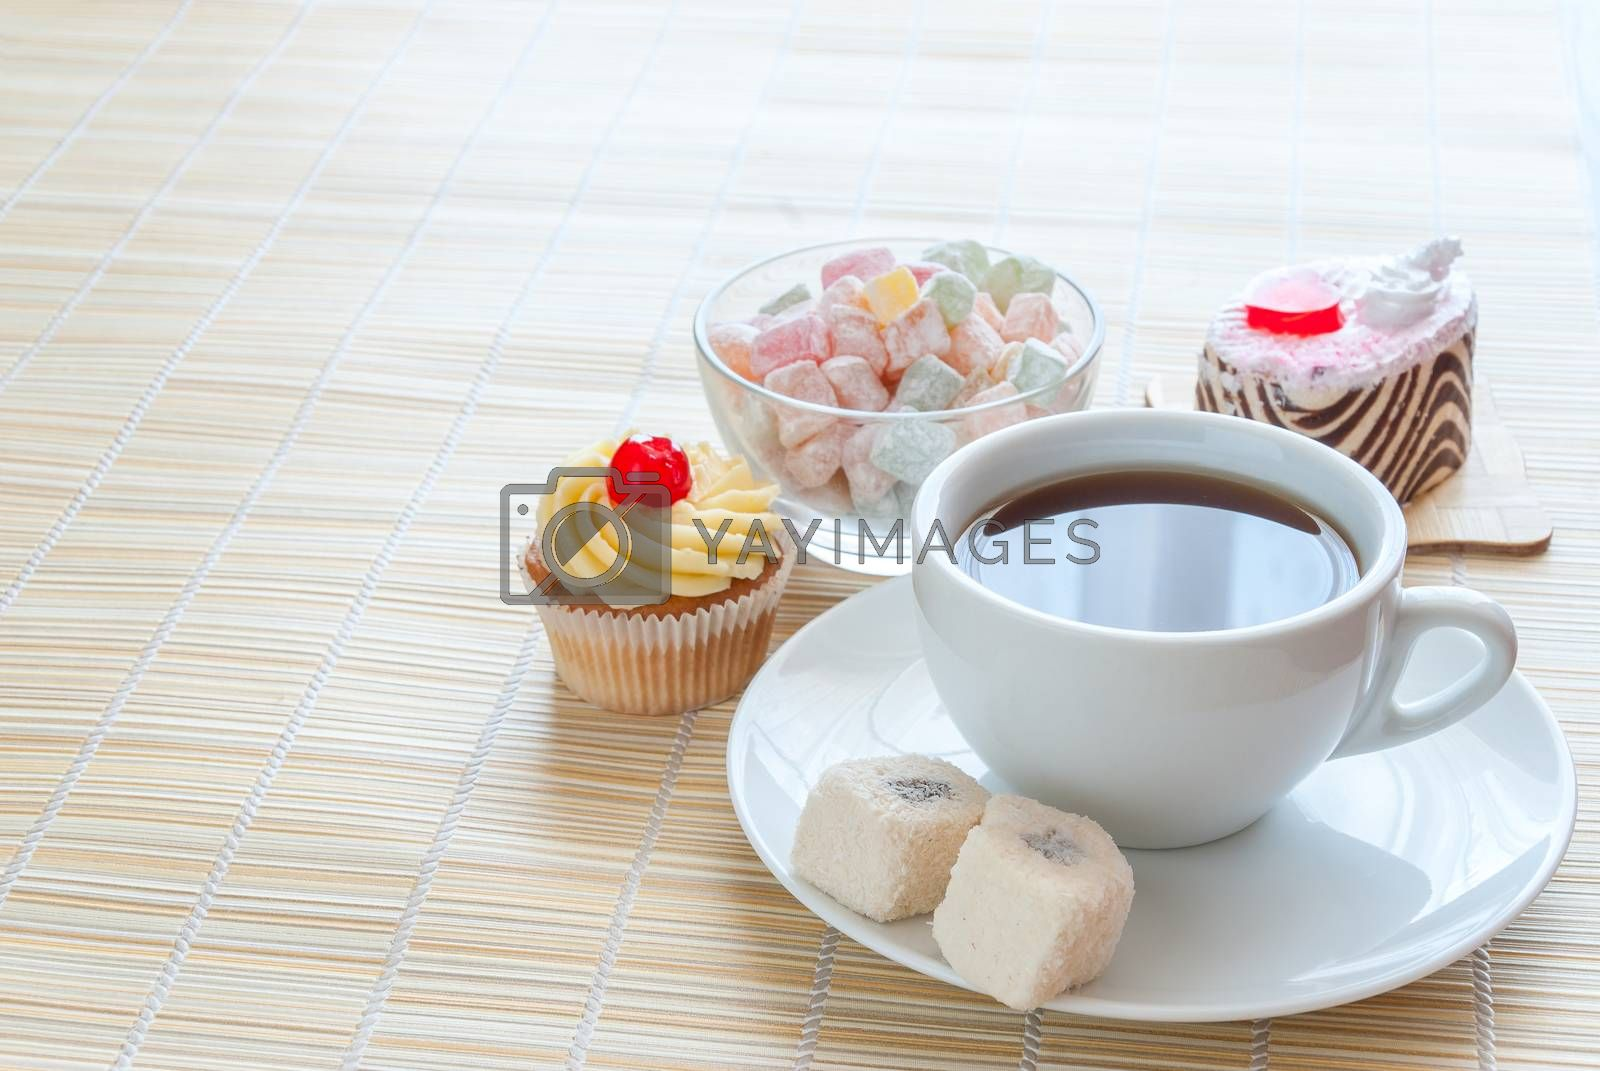 Tea, fresh cherry muffin, colorful delight and various cake, sweet dessert, with place for your text